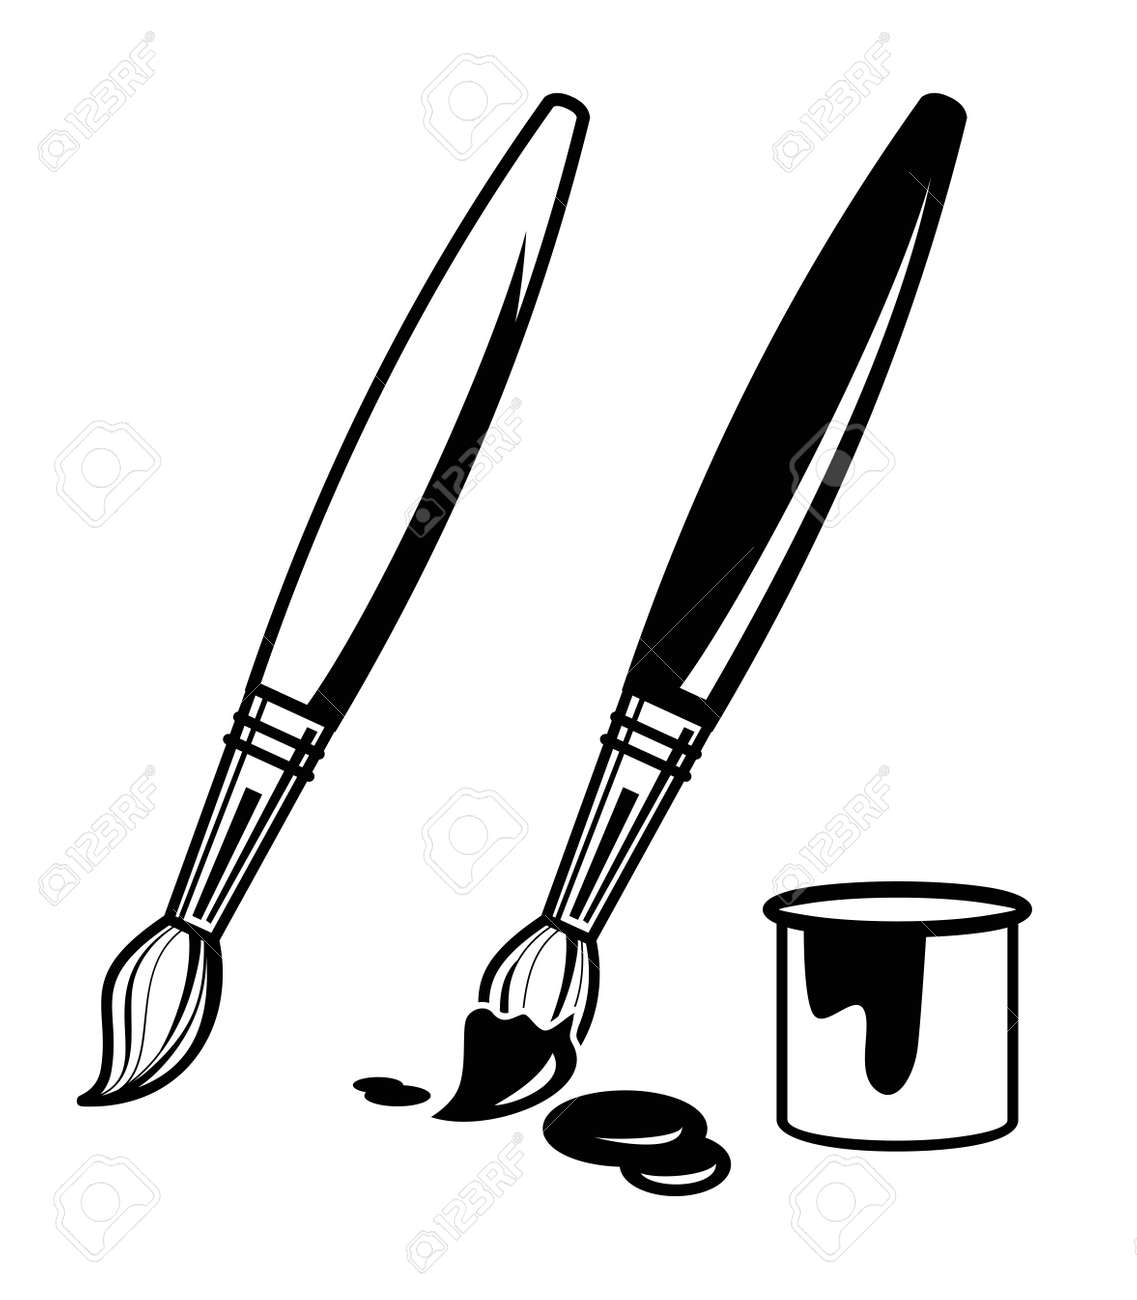 vector black paint brush icon on white background royalty free rh 123rf com paint brush vector free paint brush vector graphics